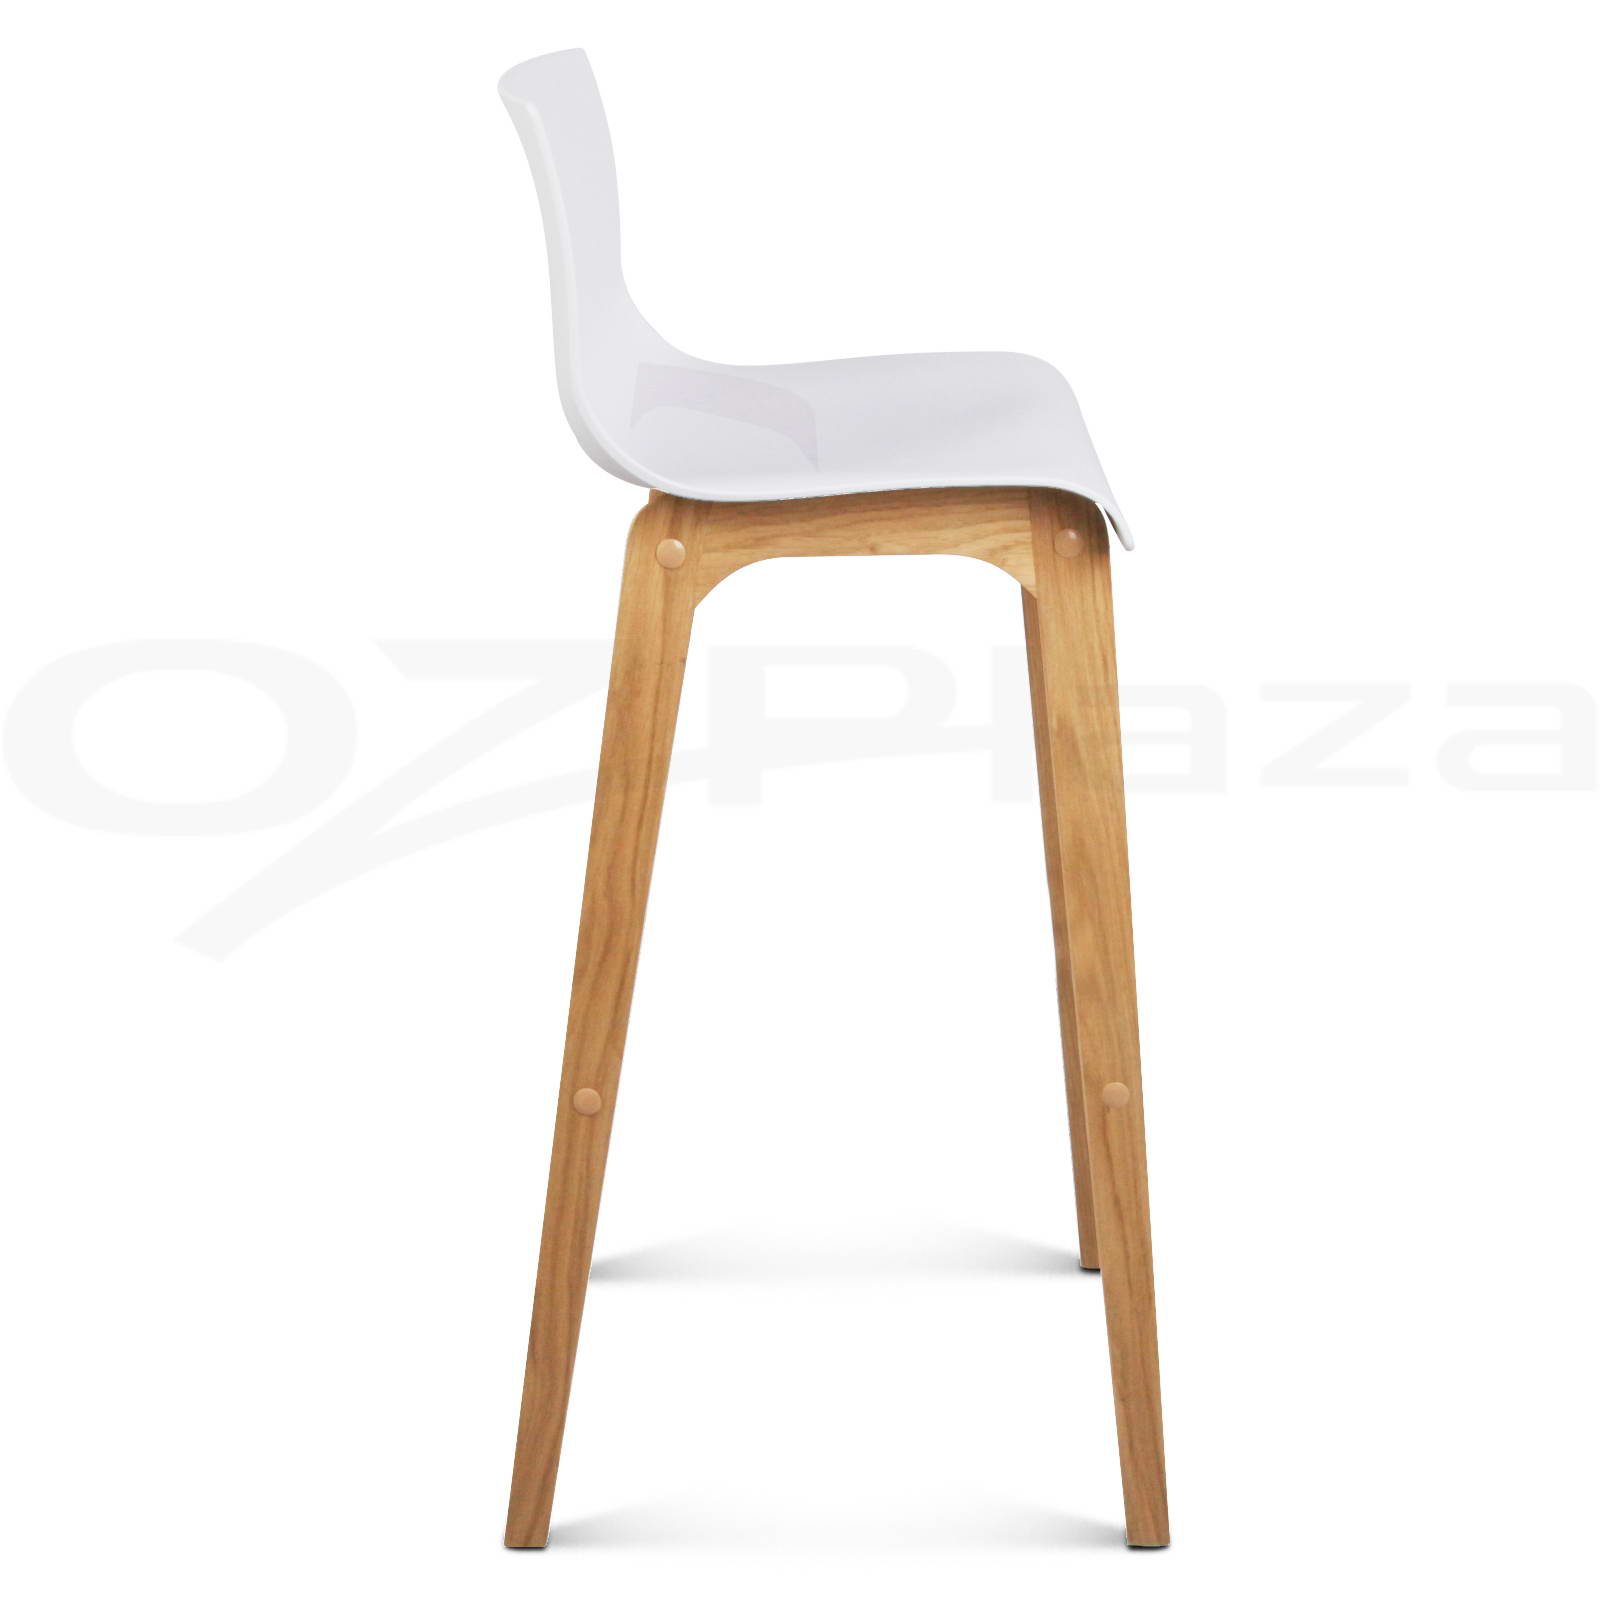 4x Oak Wood Bar Stools Wooden Dining Chairs Kitchen Side Plywood White 3608